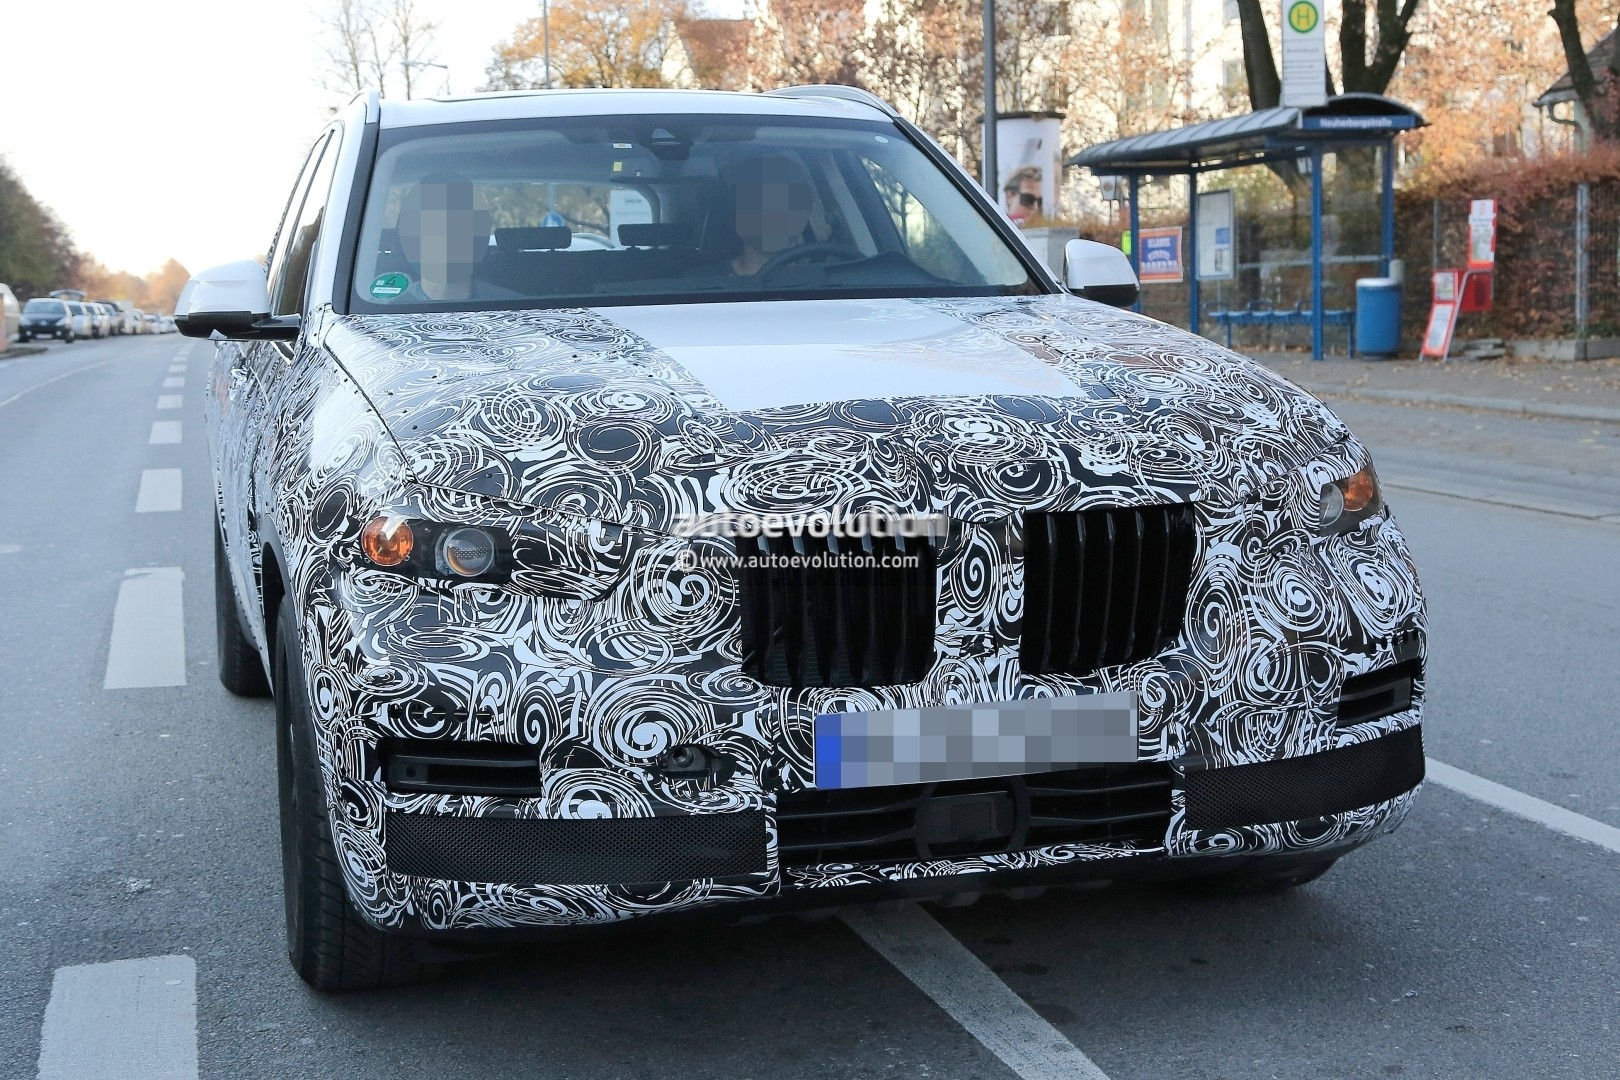 2018 - [BMW] X5 IV [G05] - Page 2 2018-bmw-x5-pre-production-prototype-first-spyshtos-reveal-huge-kidney-grilles_2